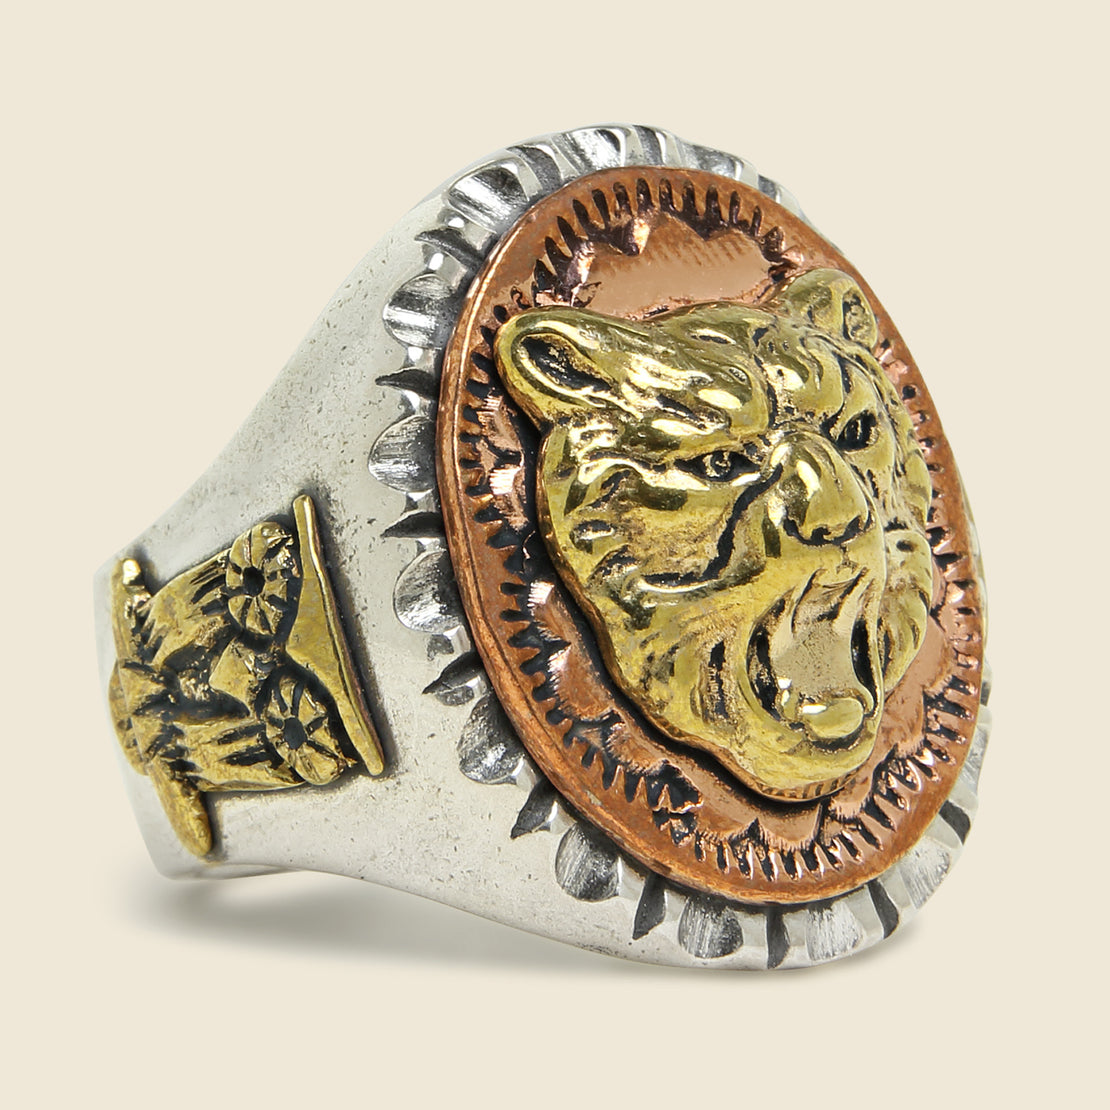 LHN Jewelry Strength & Wisdom Souvenir Ring - Silver/Brass